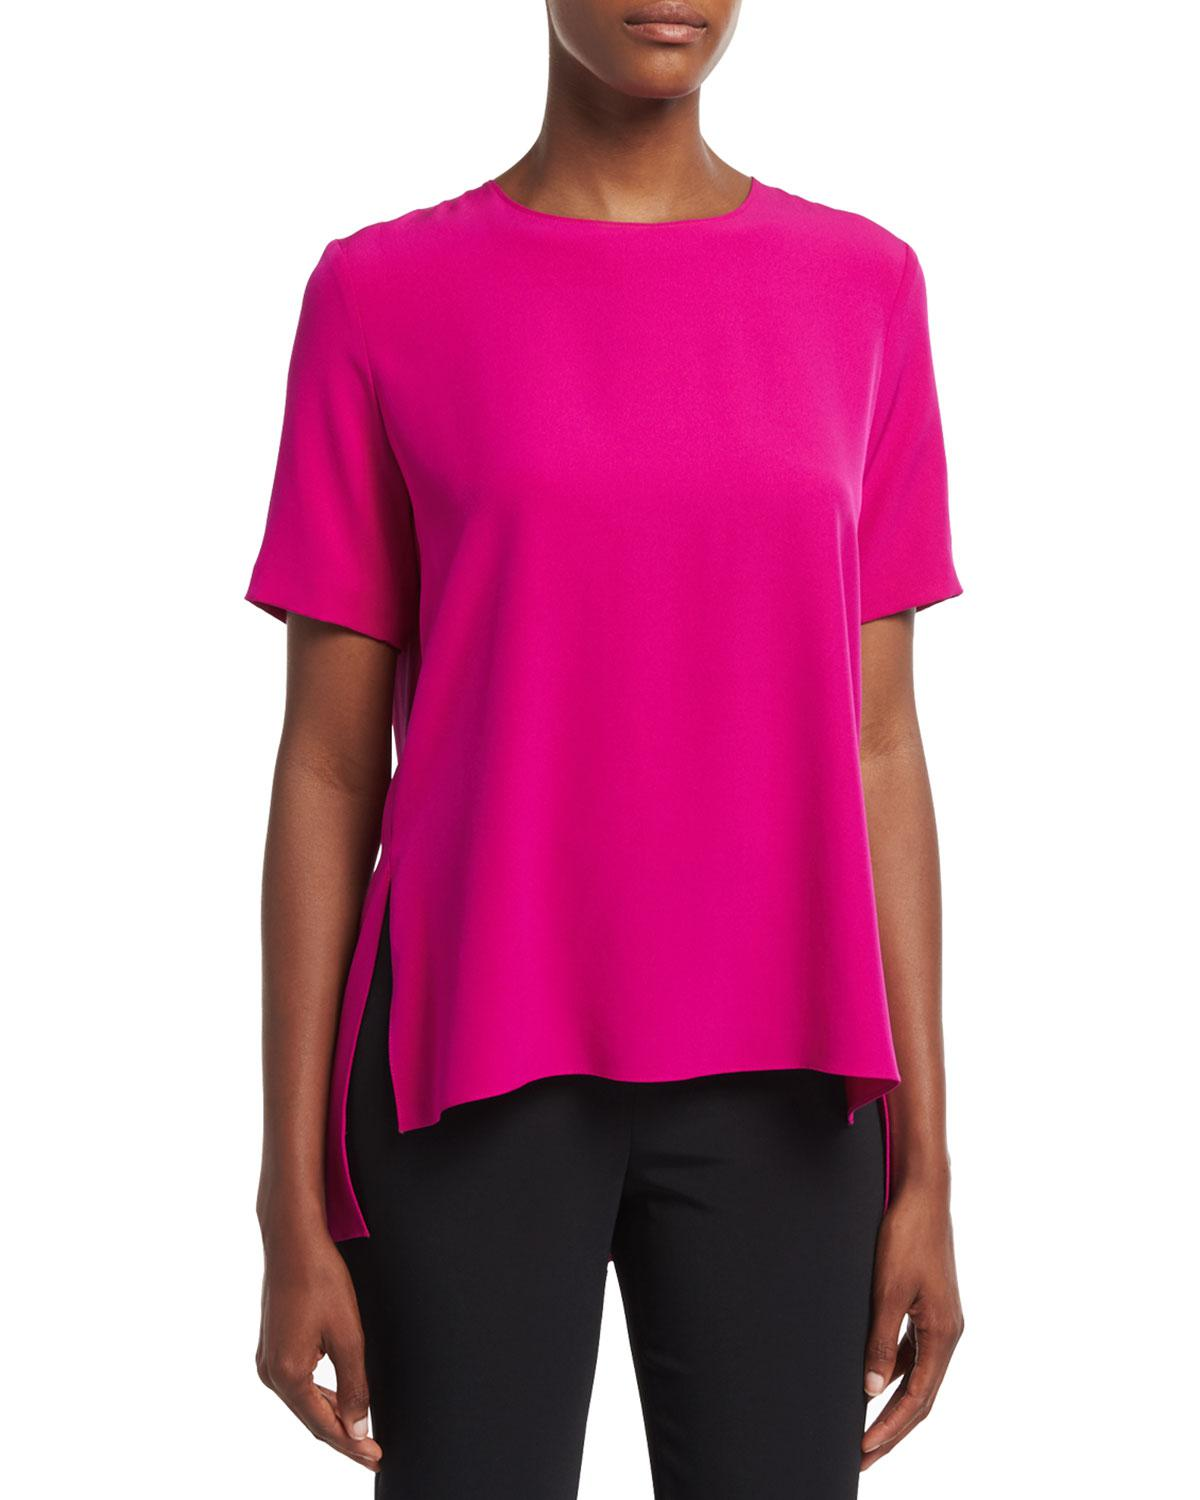 Lyst adam lippes short sleeve crepe t shirt in pink for Adam lippes t shirt